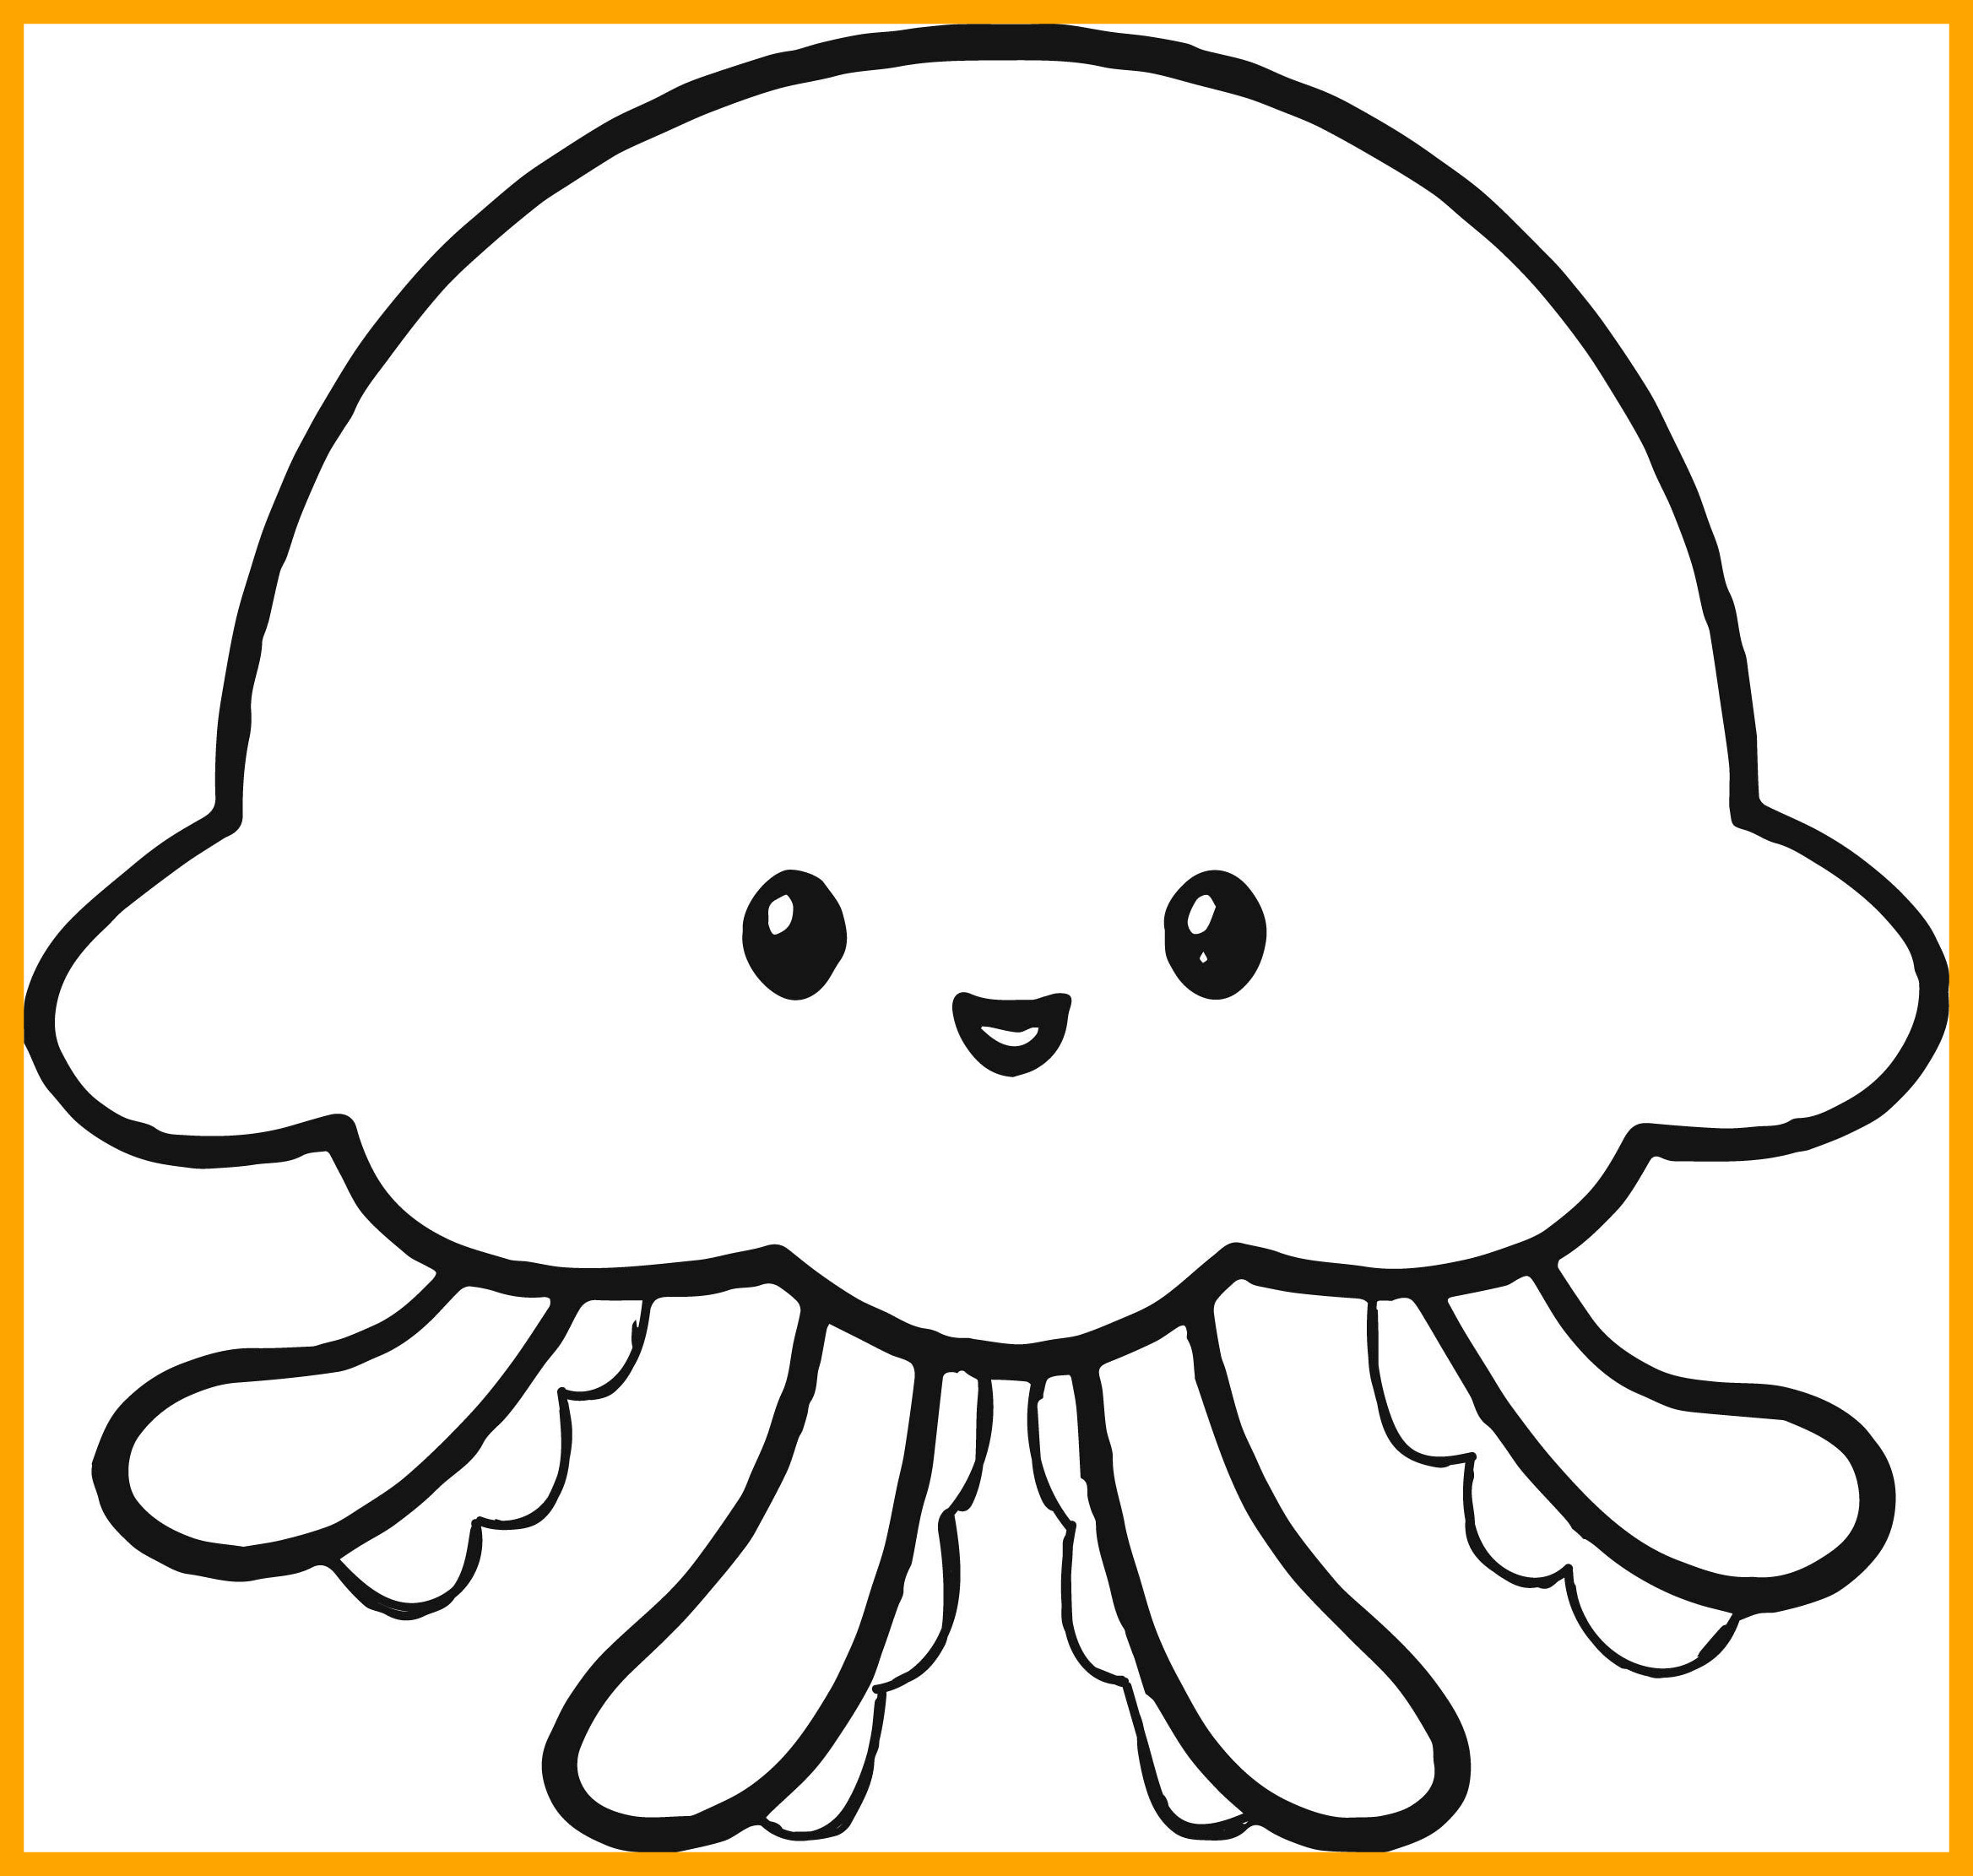 Cute Crab Drawing at GetDrawings.com | Free for personal use Cute ...